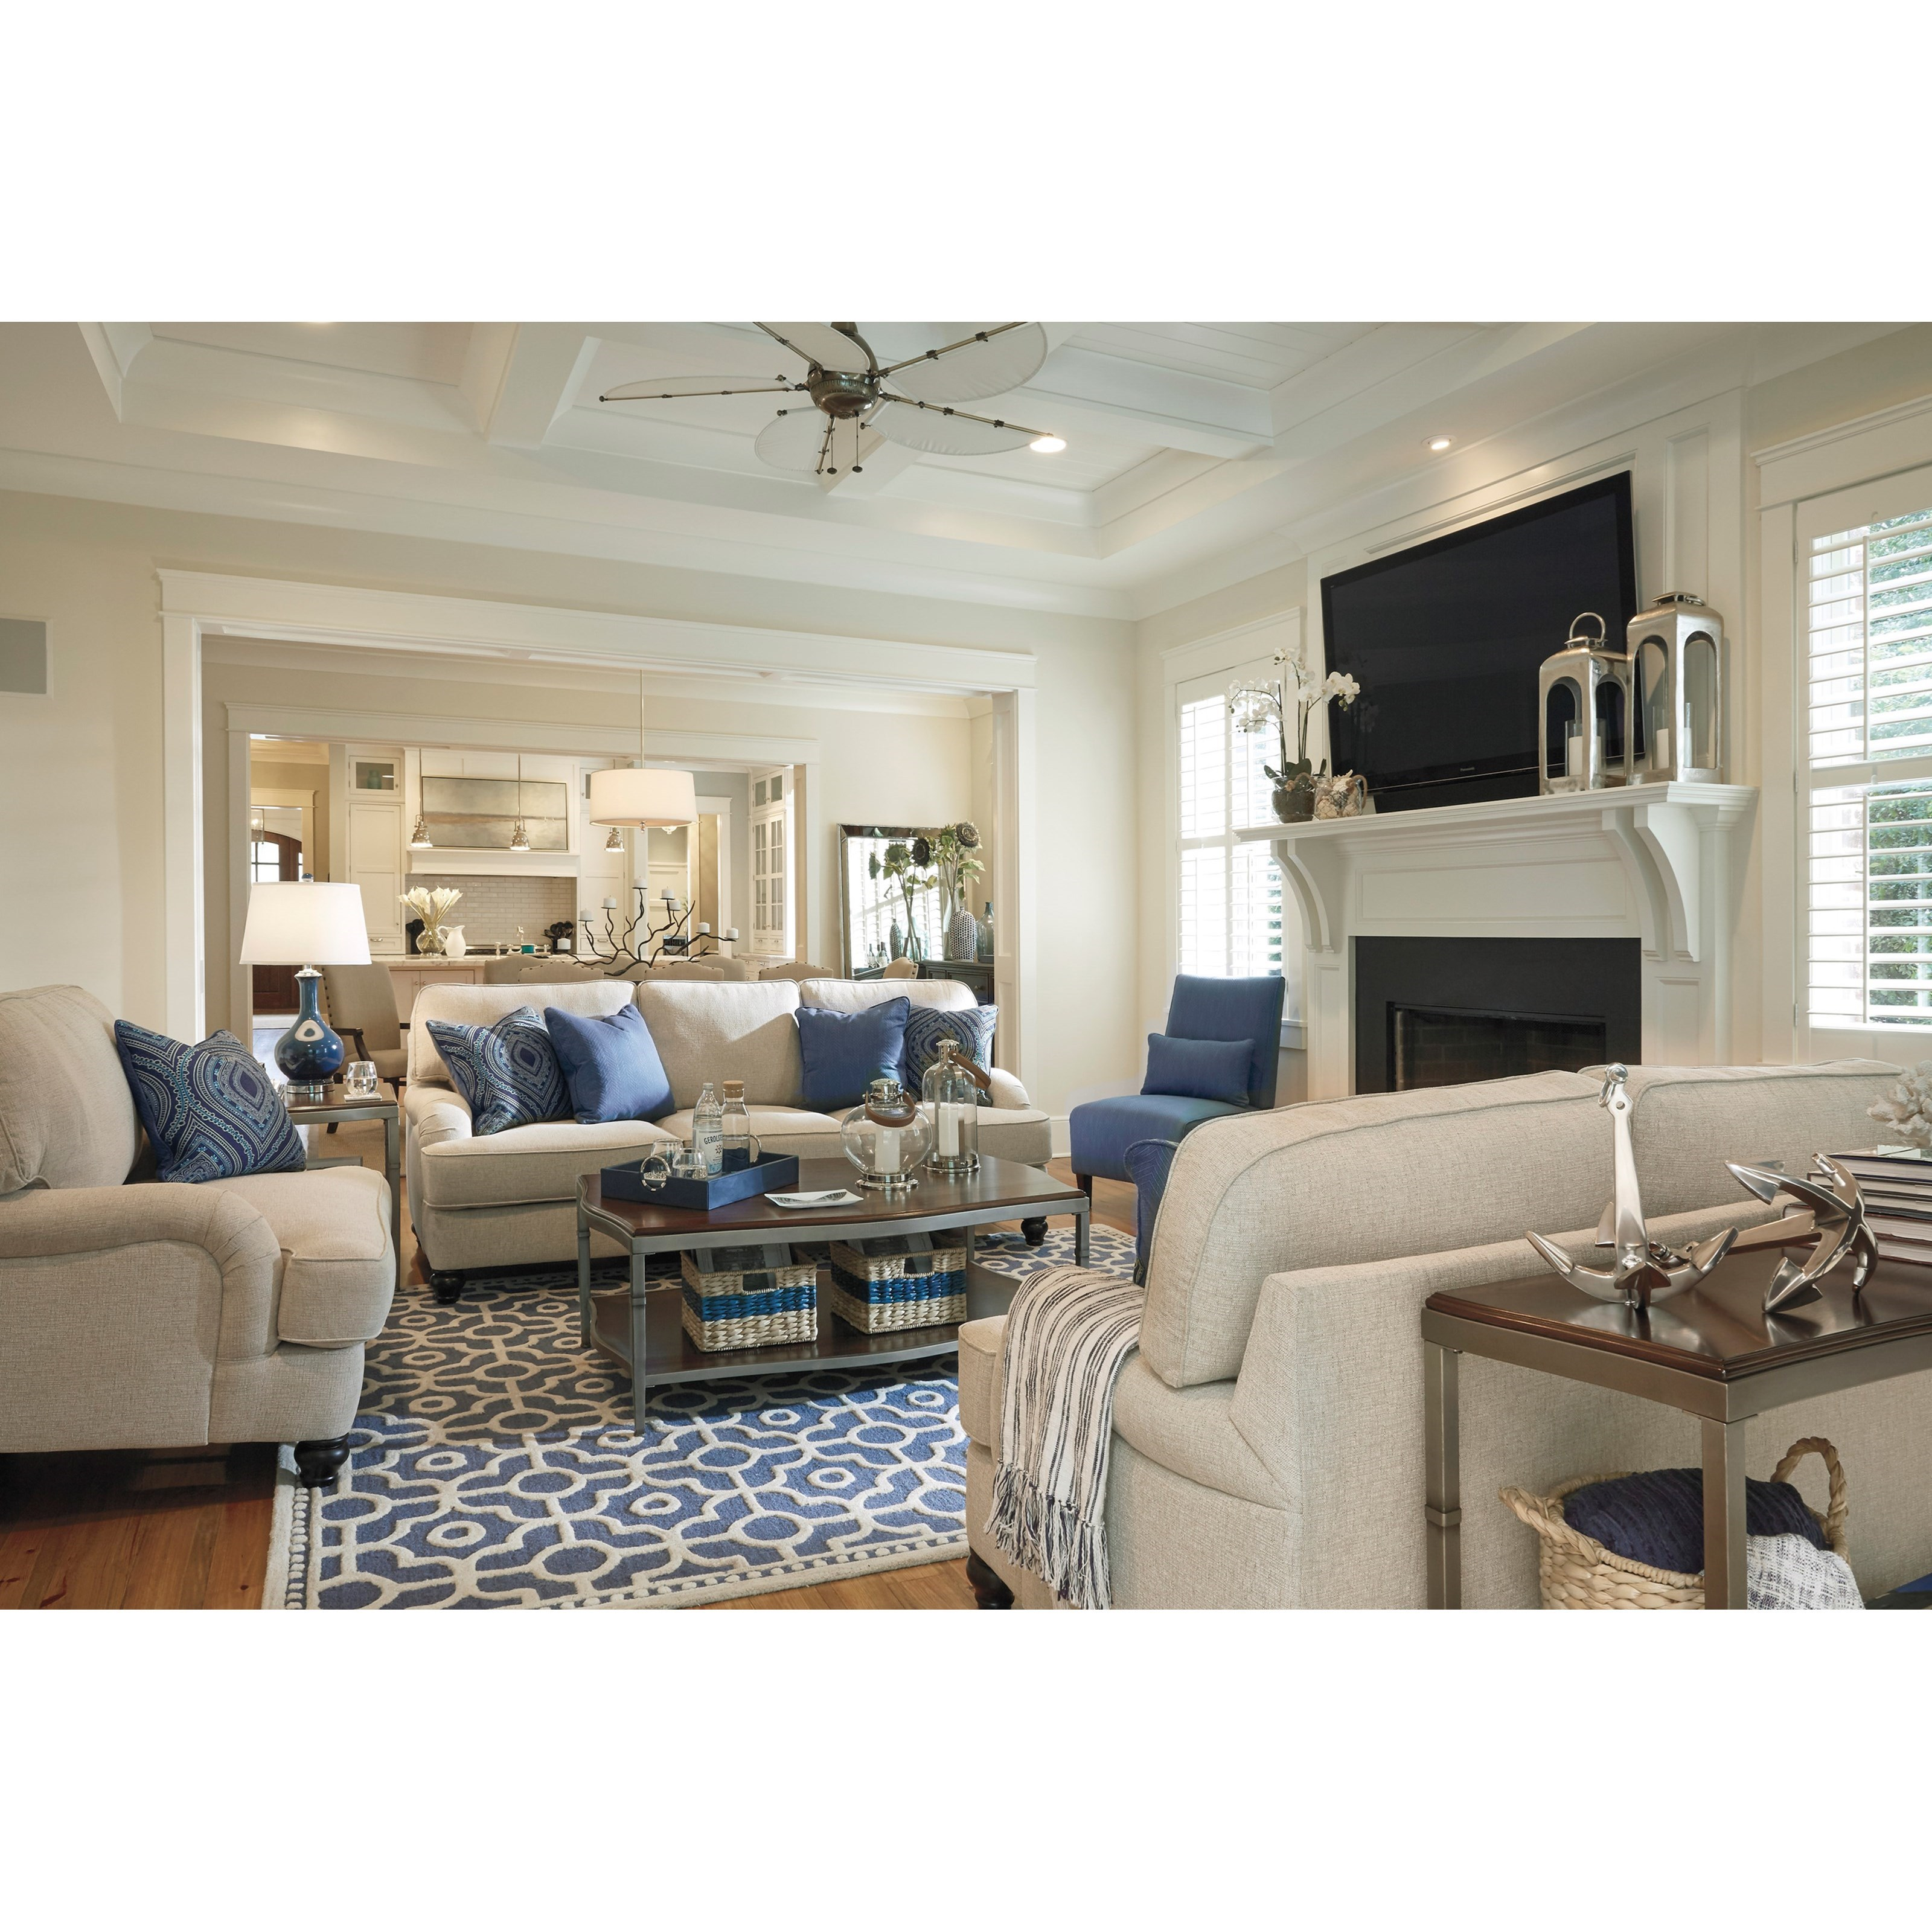 Millennium Harahan Stationary Living Room Group - Item Number: 35701 Living Room Group 4